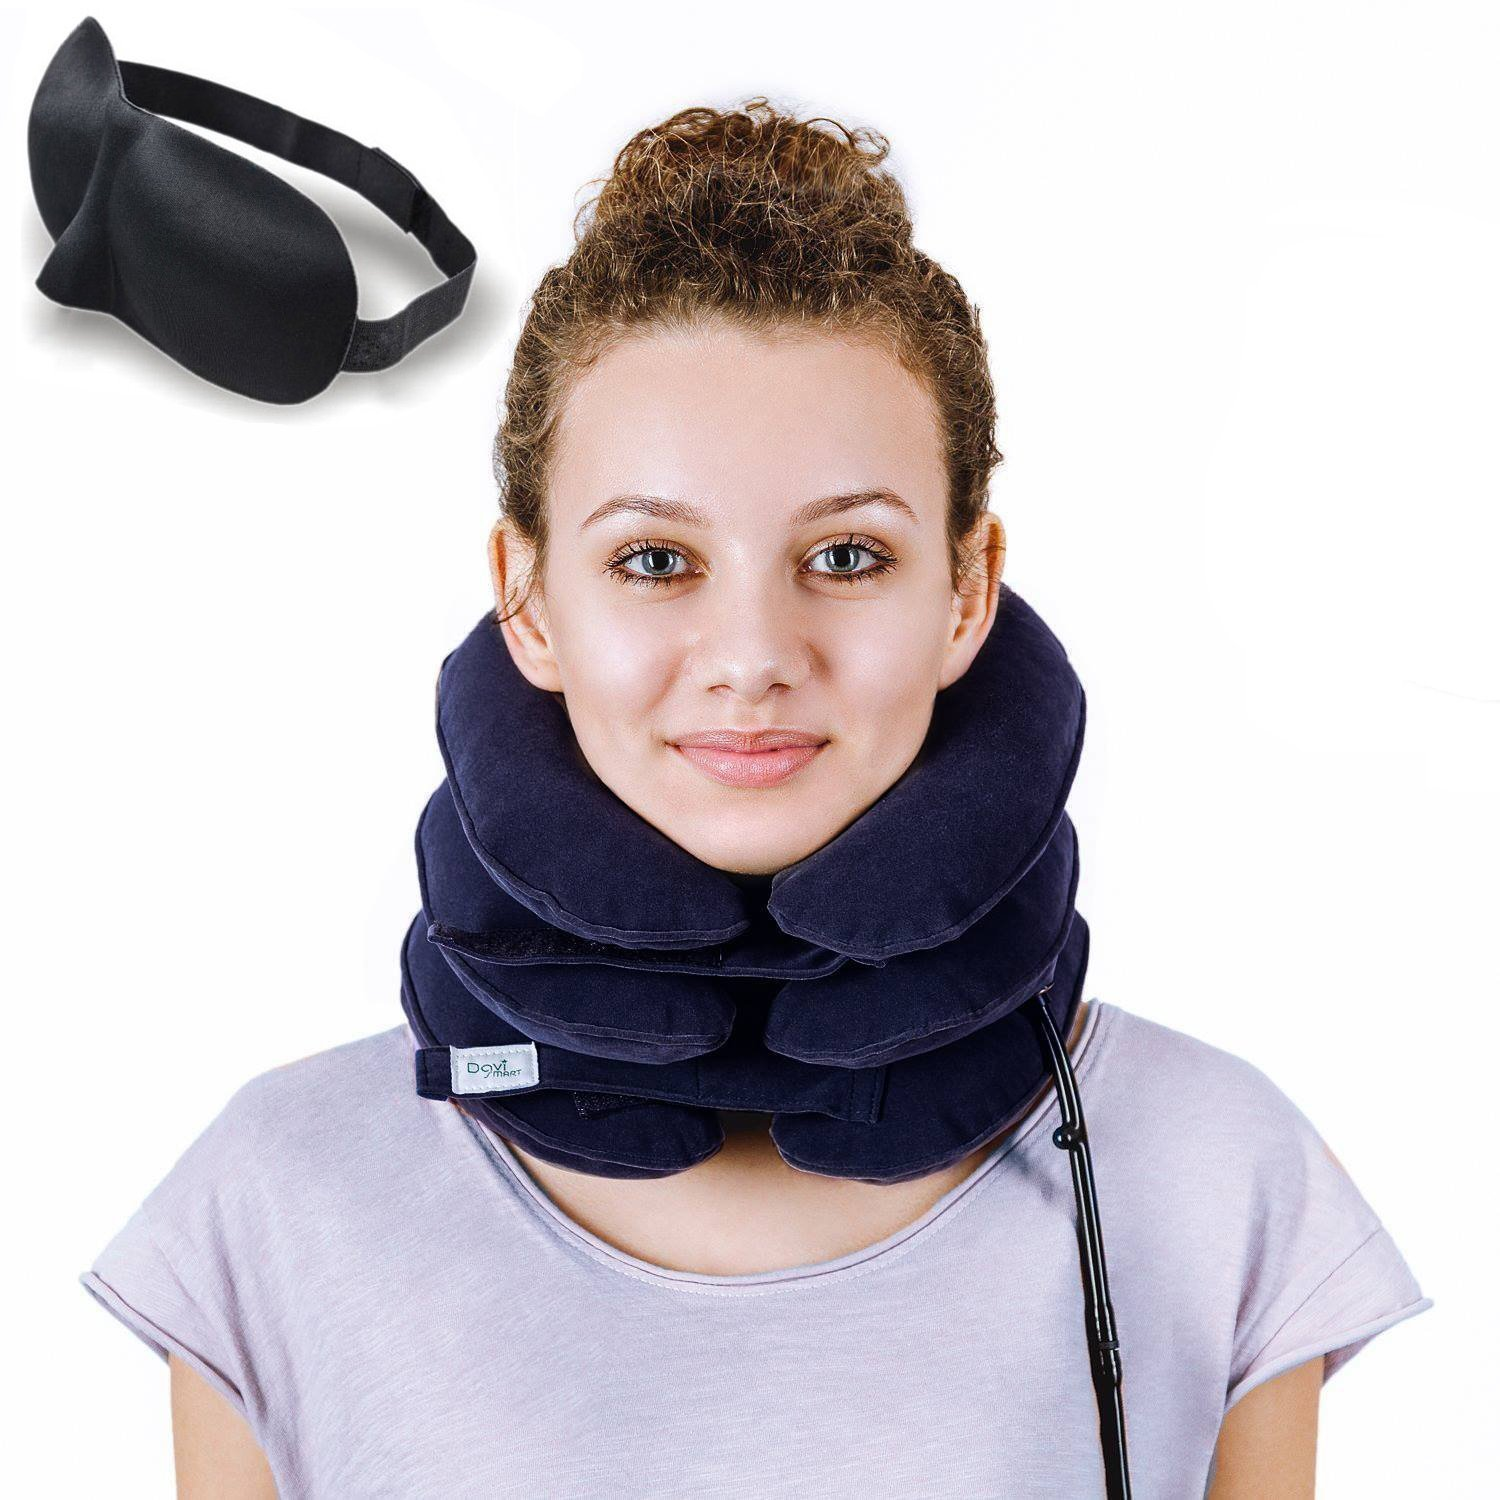 Amazon the neck hammock 20 the original portable cervical davismart cervical neck traction effective neck pain remedy at home inflatable adjustable neck solutioingenieria Image collections